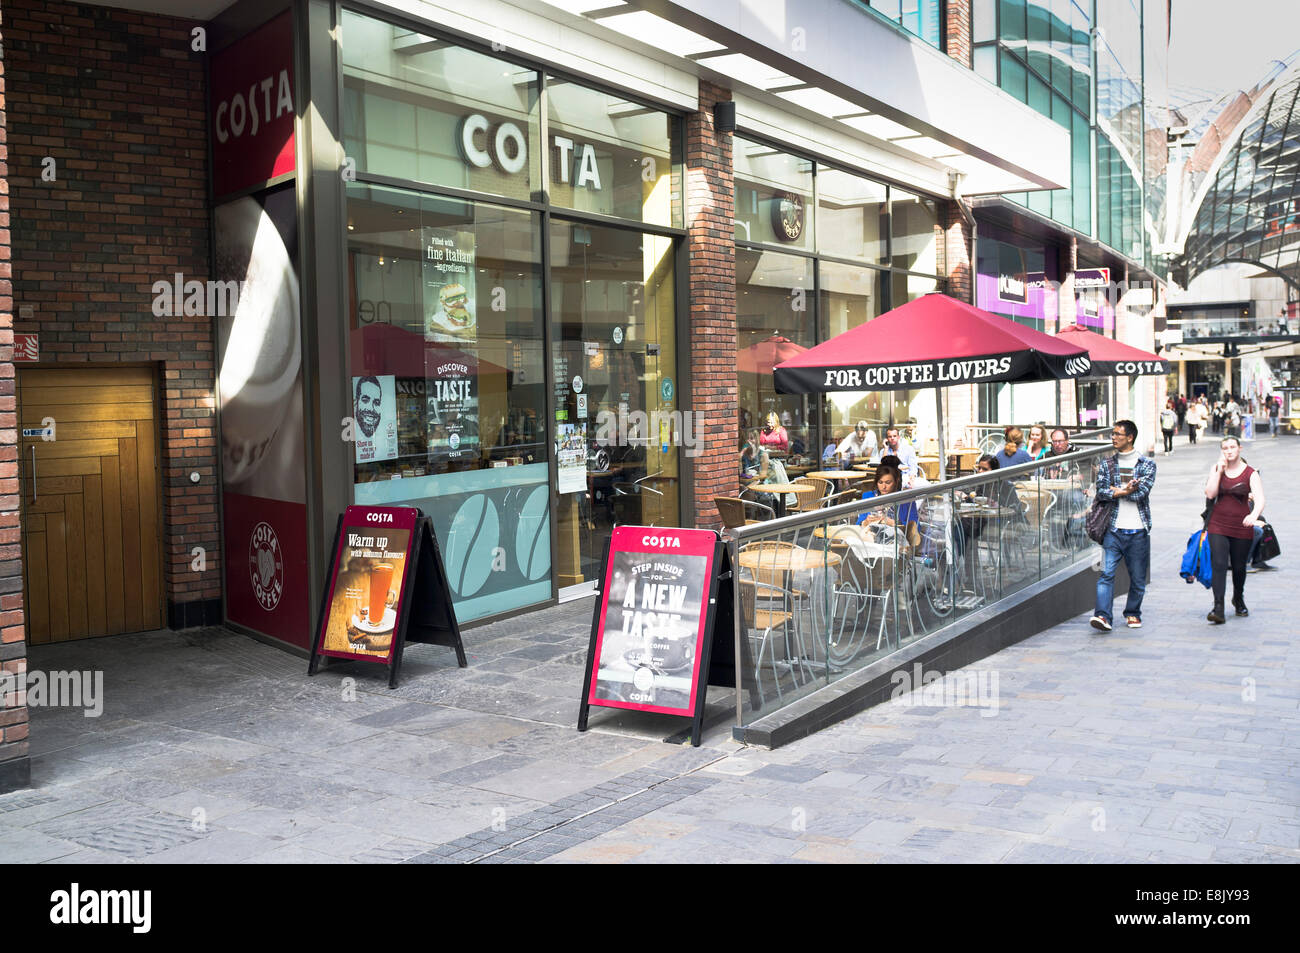 Dh Costa Shop Retail Costa Coffee Shop Cabot Circus Shopping